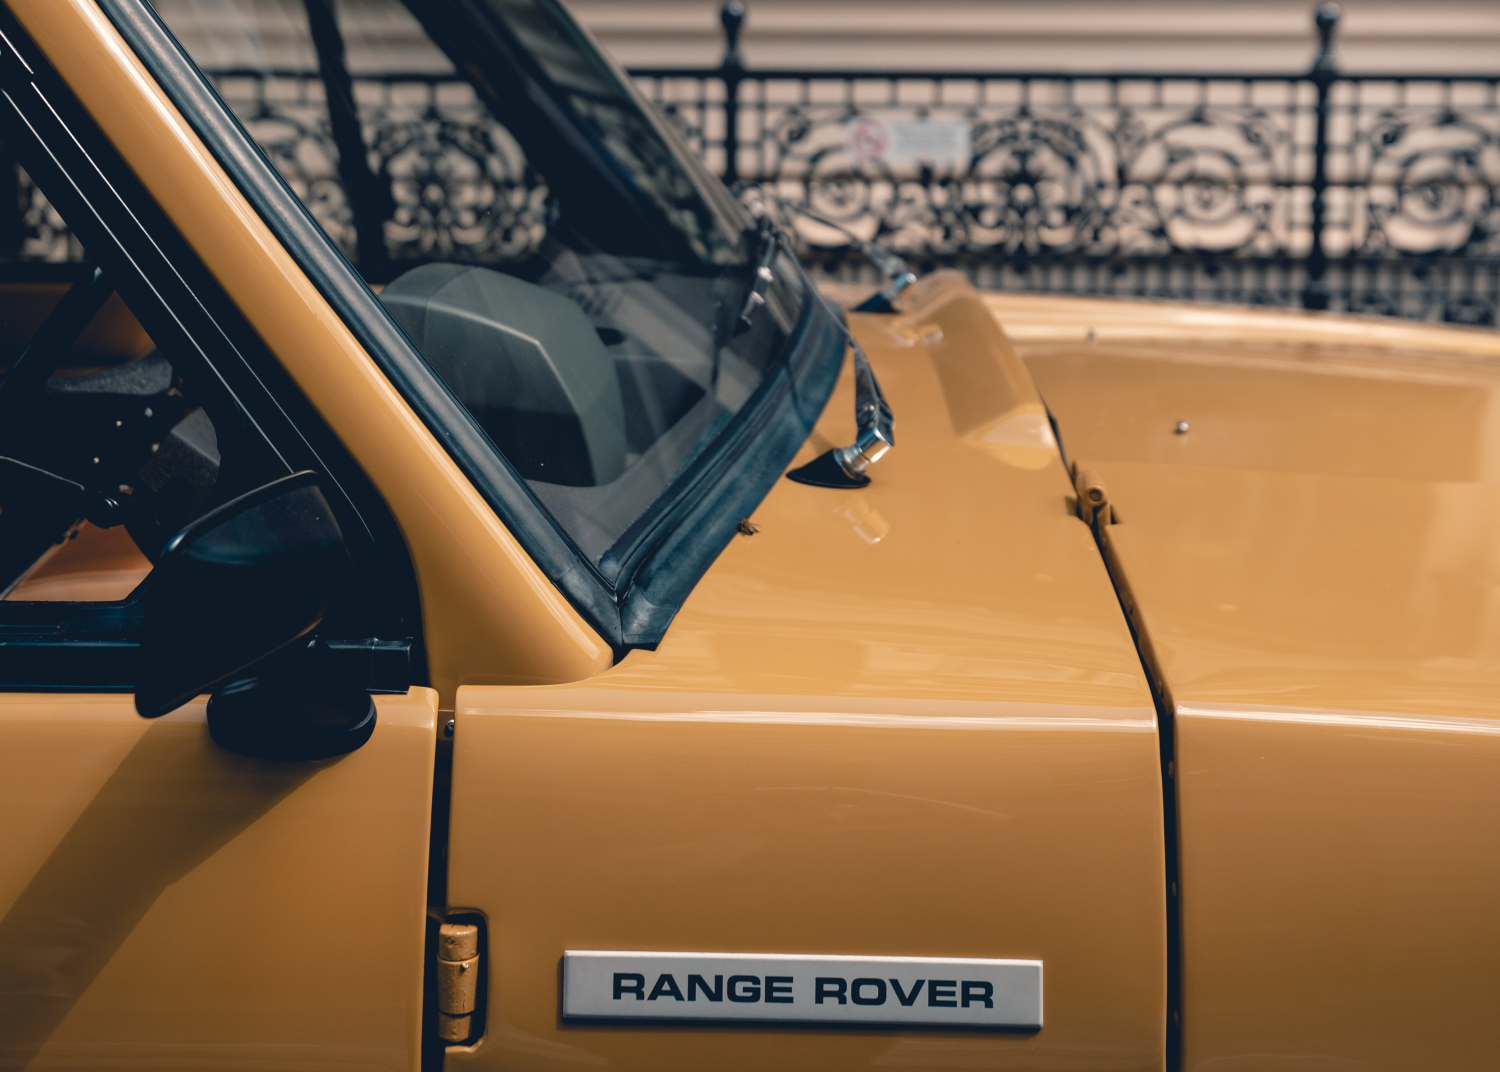 LAND ROVER AND HENRY POOLE CREATE UNIQUE FABRIC TO CELEBRATE 50 YEARS OF RANGE ROVER